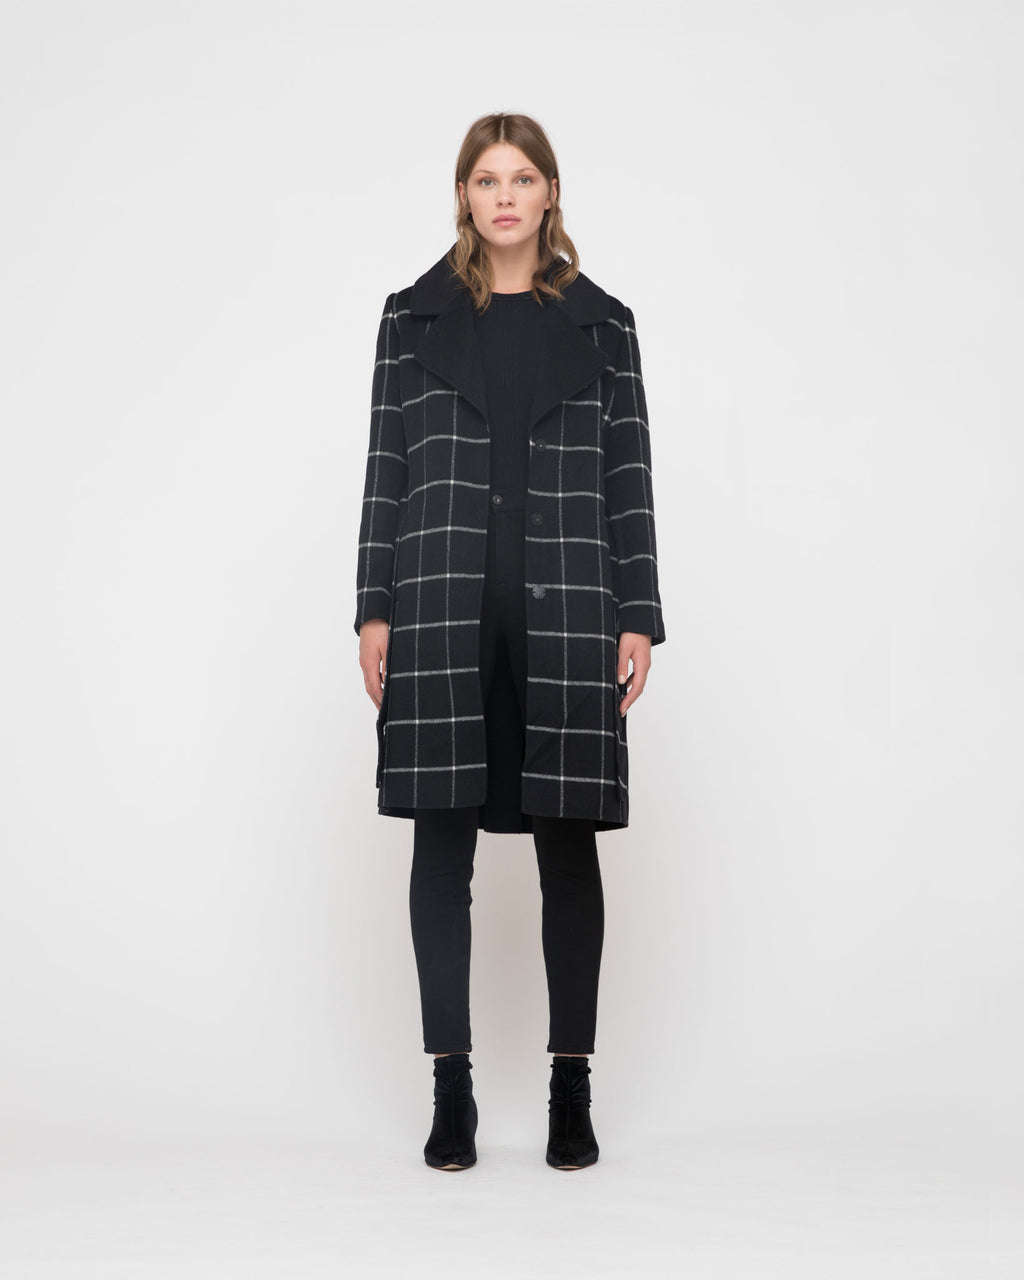 The Skyler Coat in Black Plaid